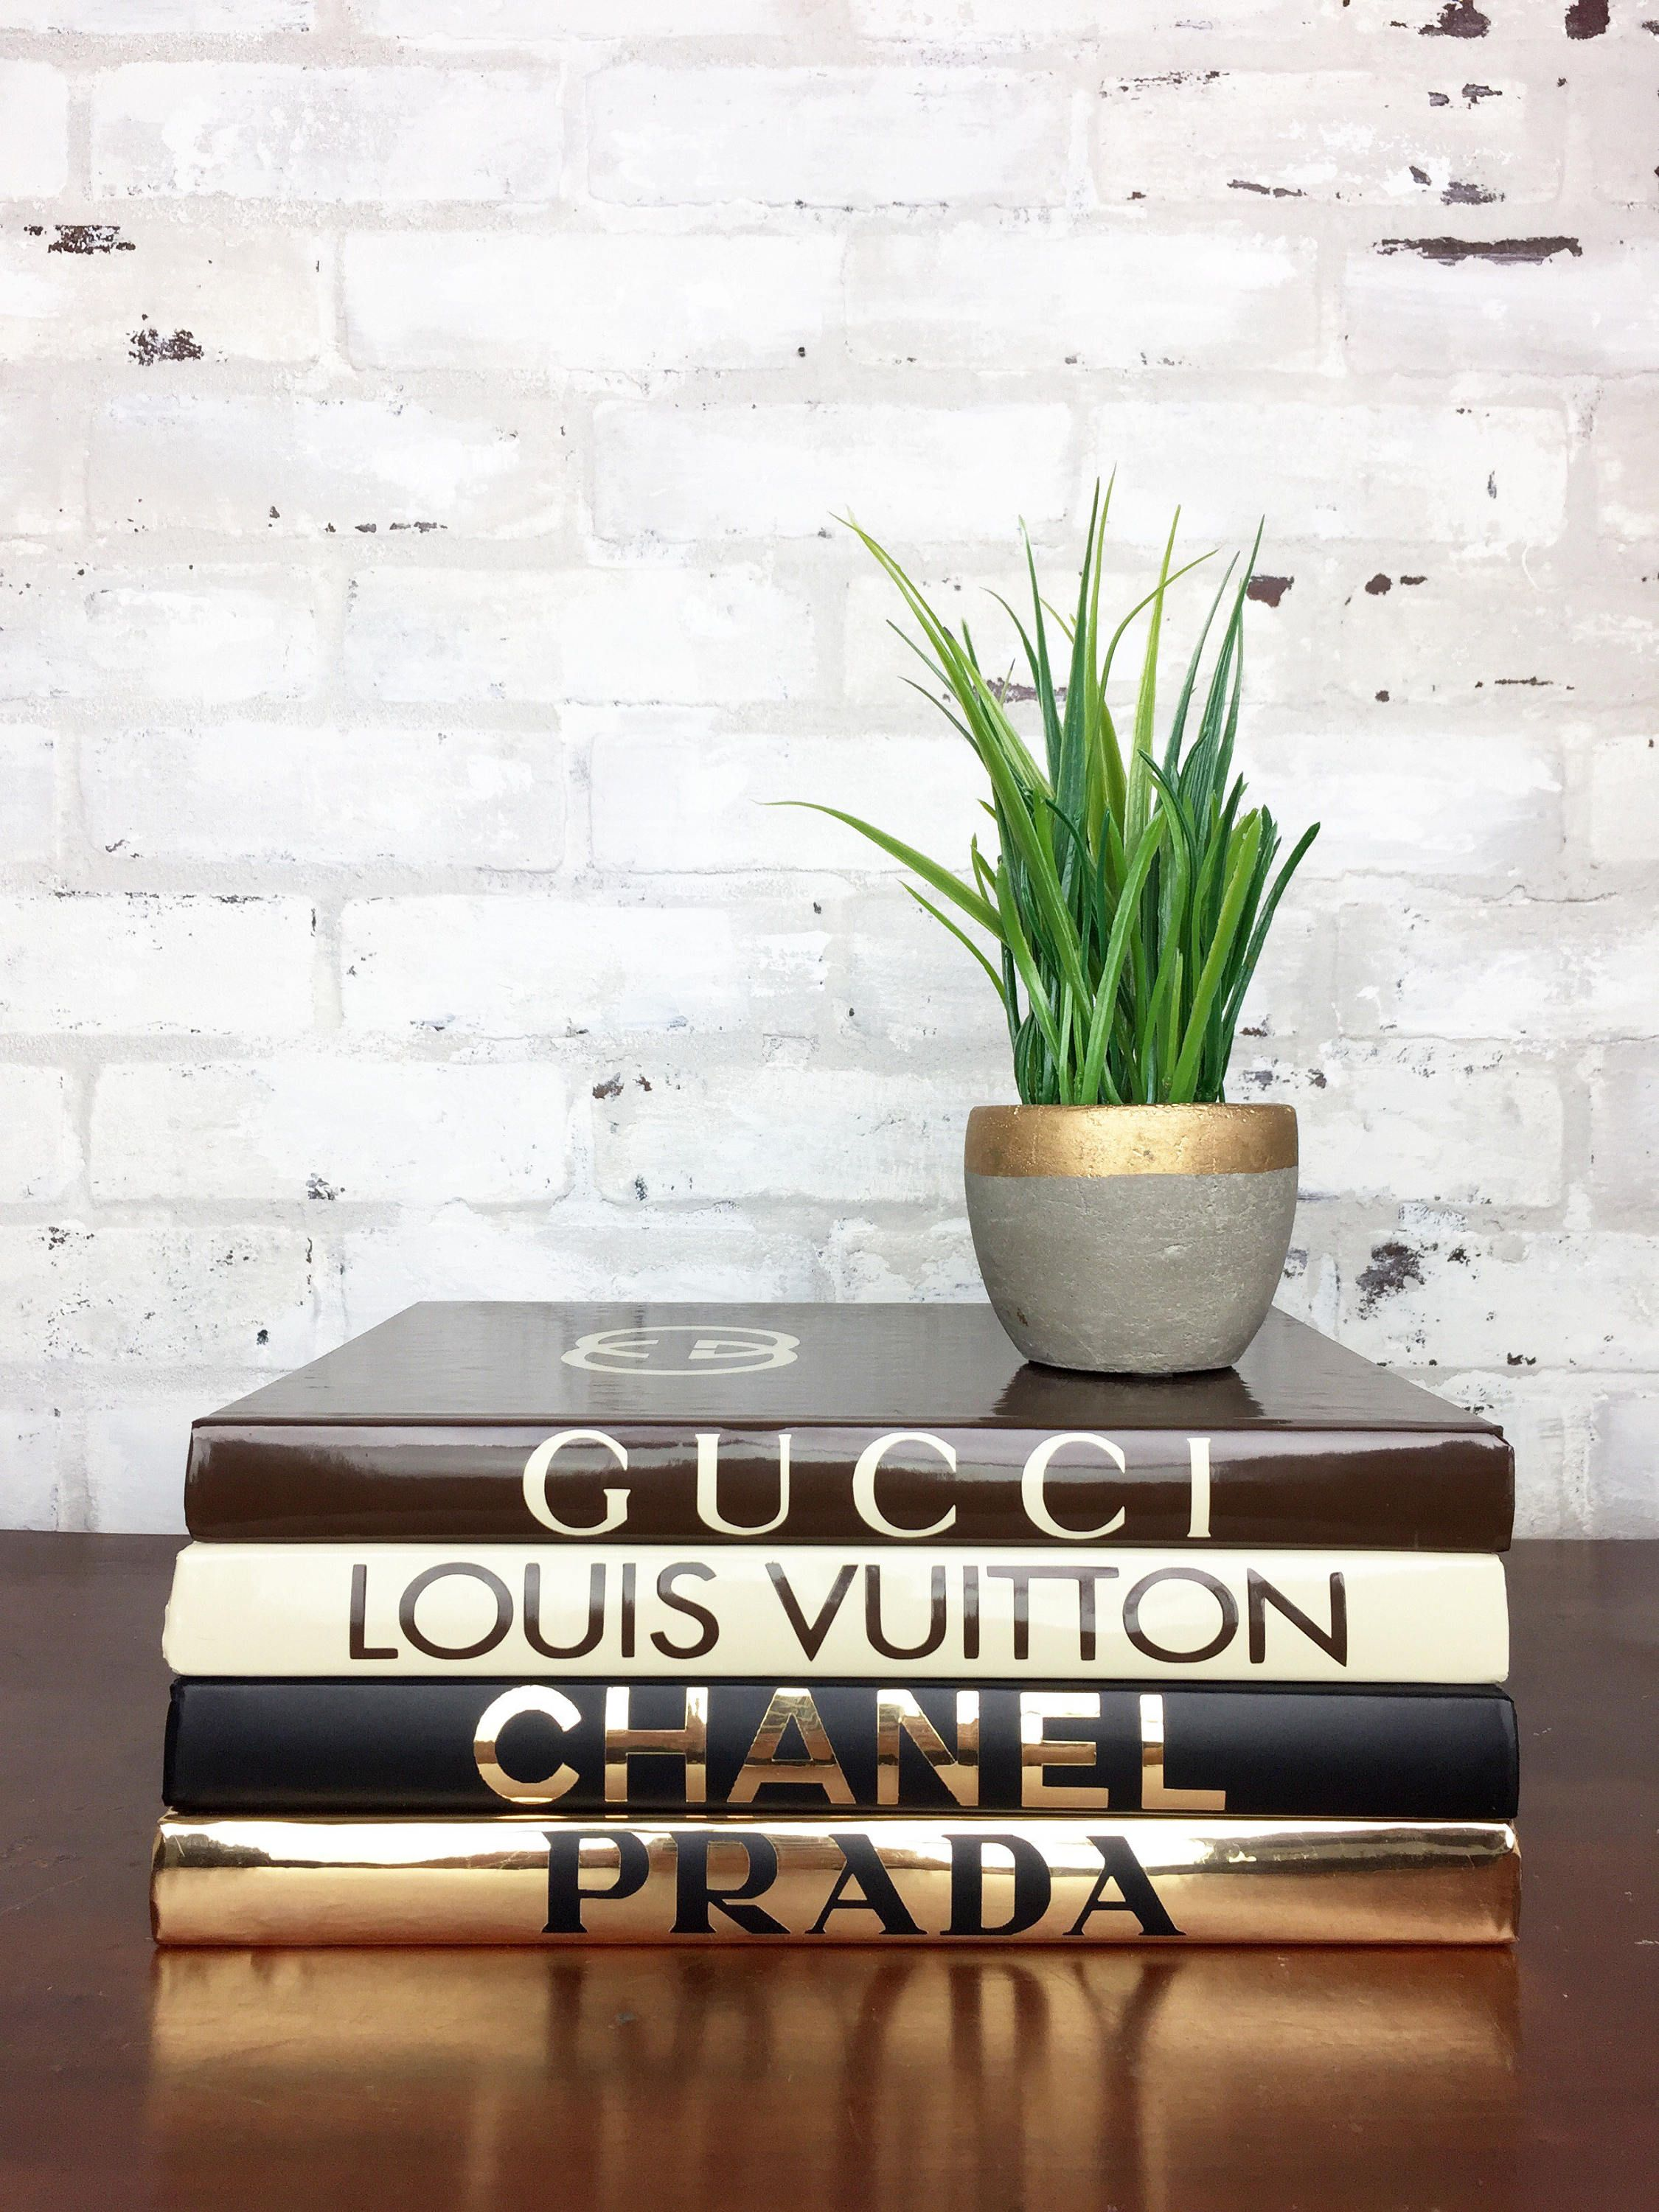 exceptional Huge Coffee Table Books Part - 7: 4 LARGE COFFEE TABLE Books - Gold-Black-Tan-Brown, Oversized Books, Huge  Designer Decorative Books, Chanel, Louis Vuitton, Prada